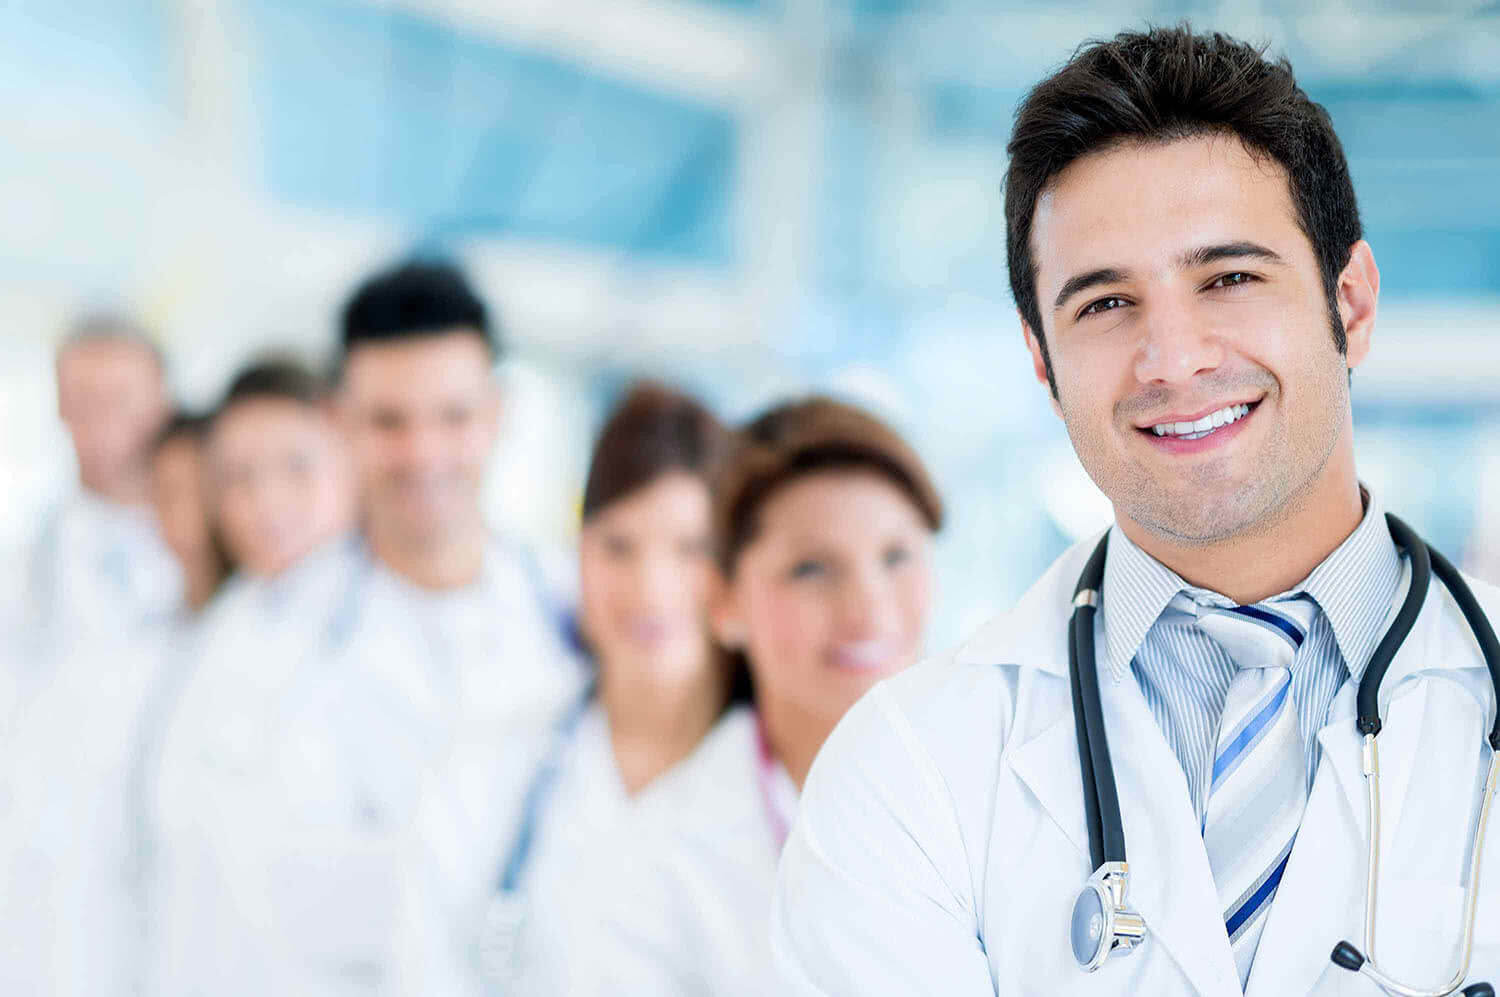 Male doctor at the hospital with his team